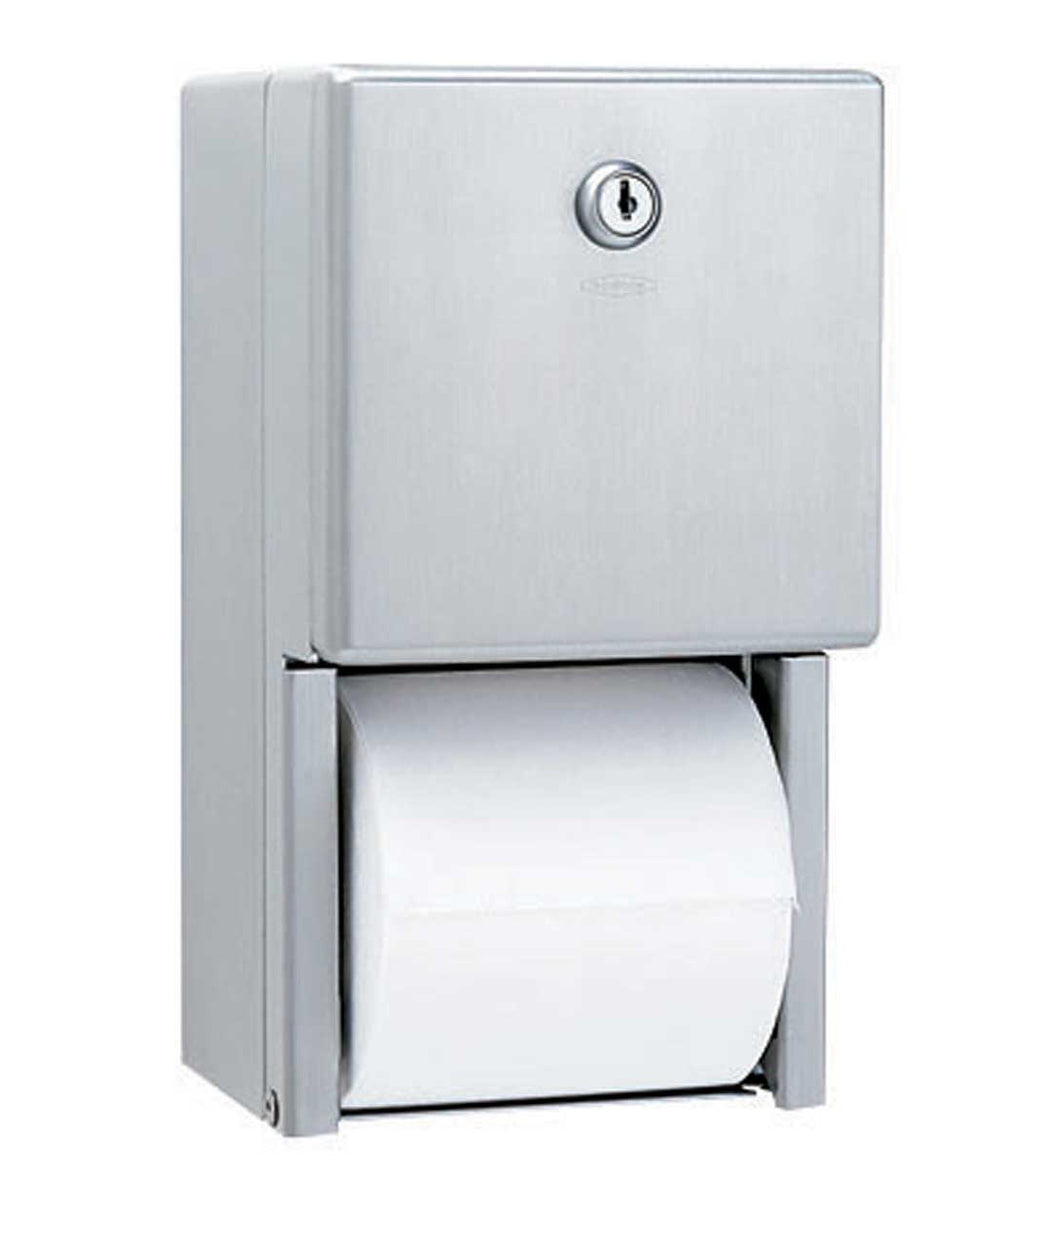 Bobrick Stainless Steel  Multi-Roll Toilet Tissue Dispenser